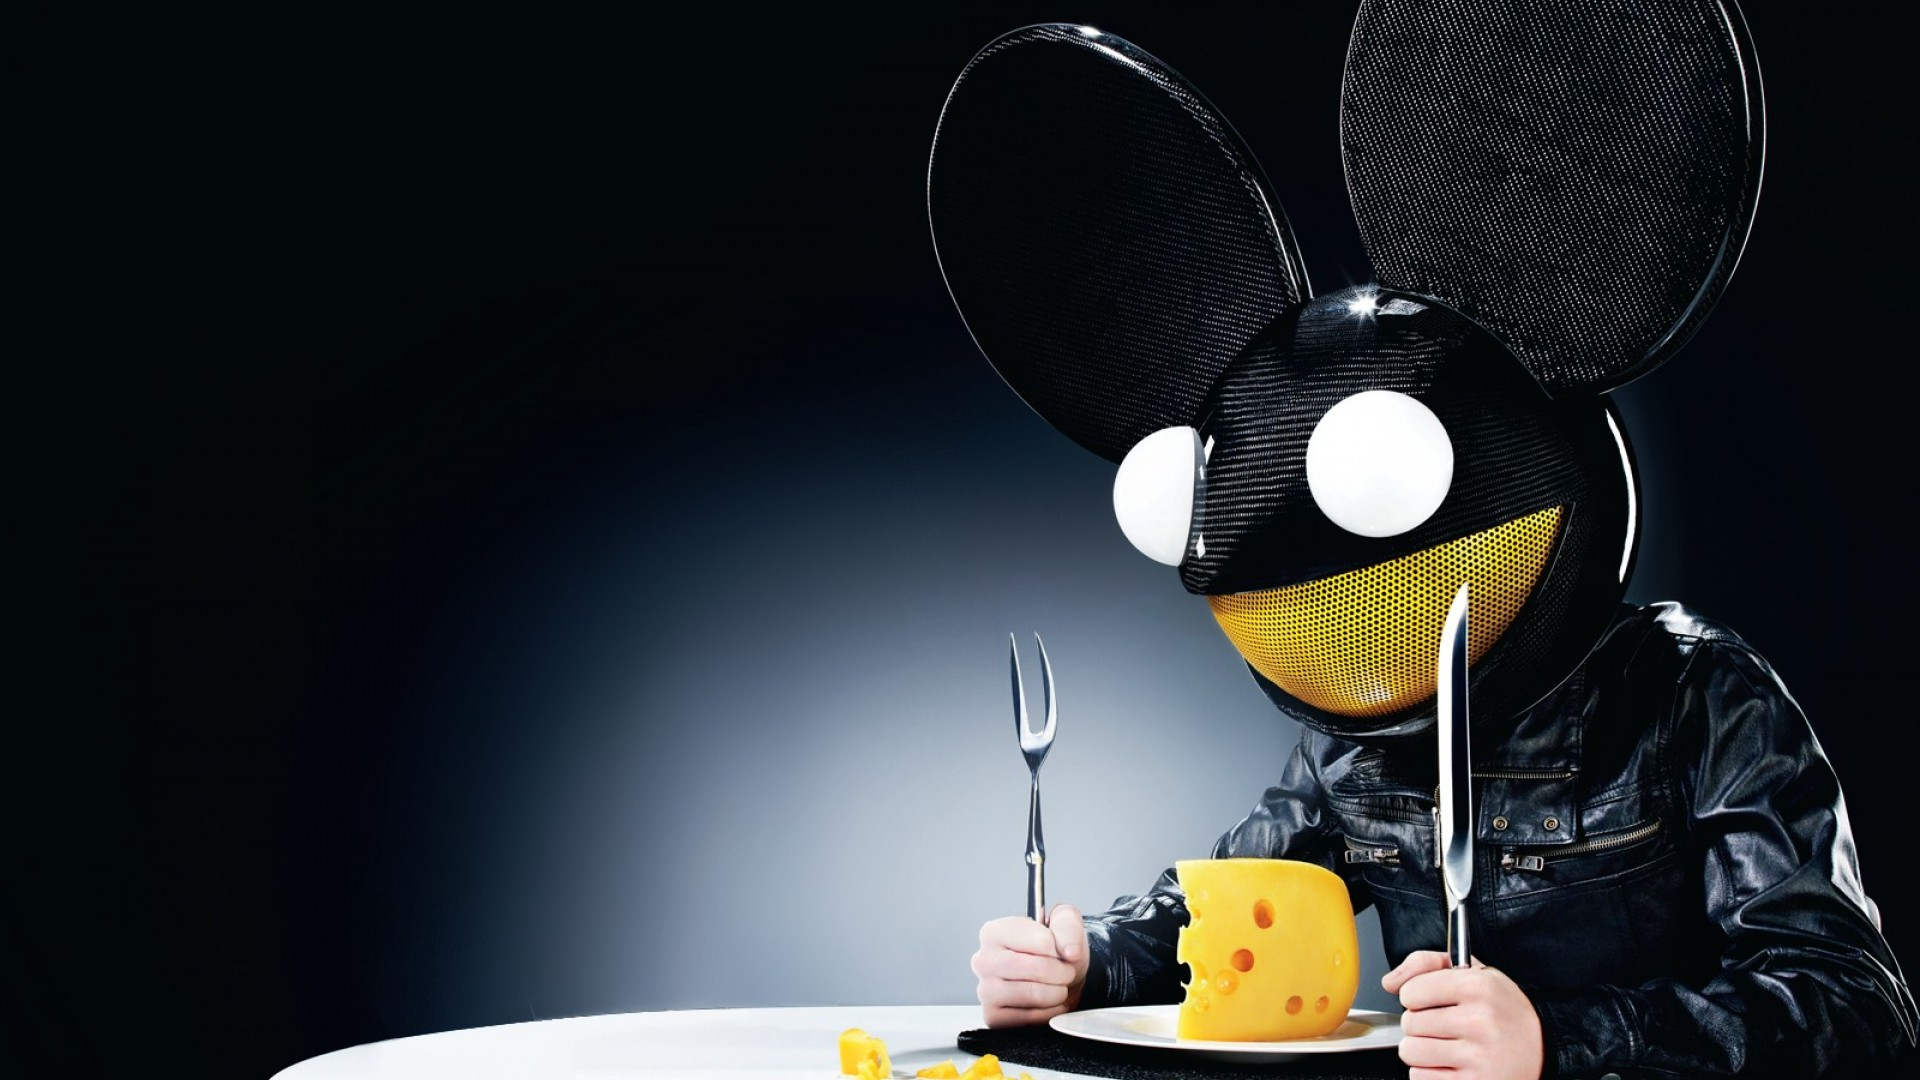 Apple Music Adds Deadmau5 To Roster Of Artists Hosting On Beats 1 Radio